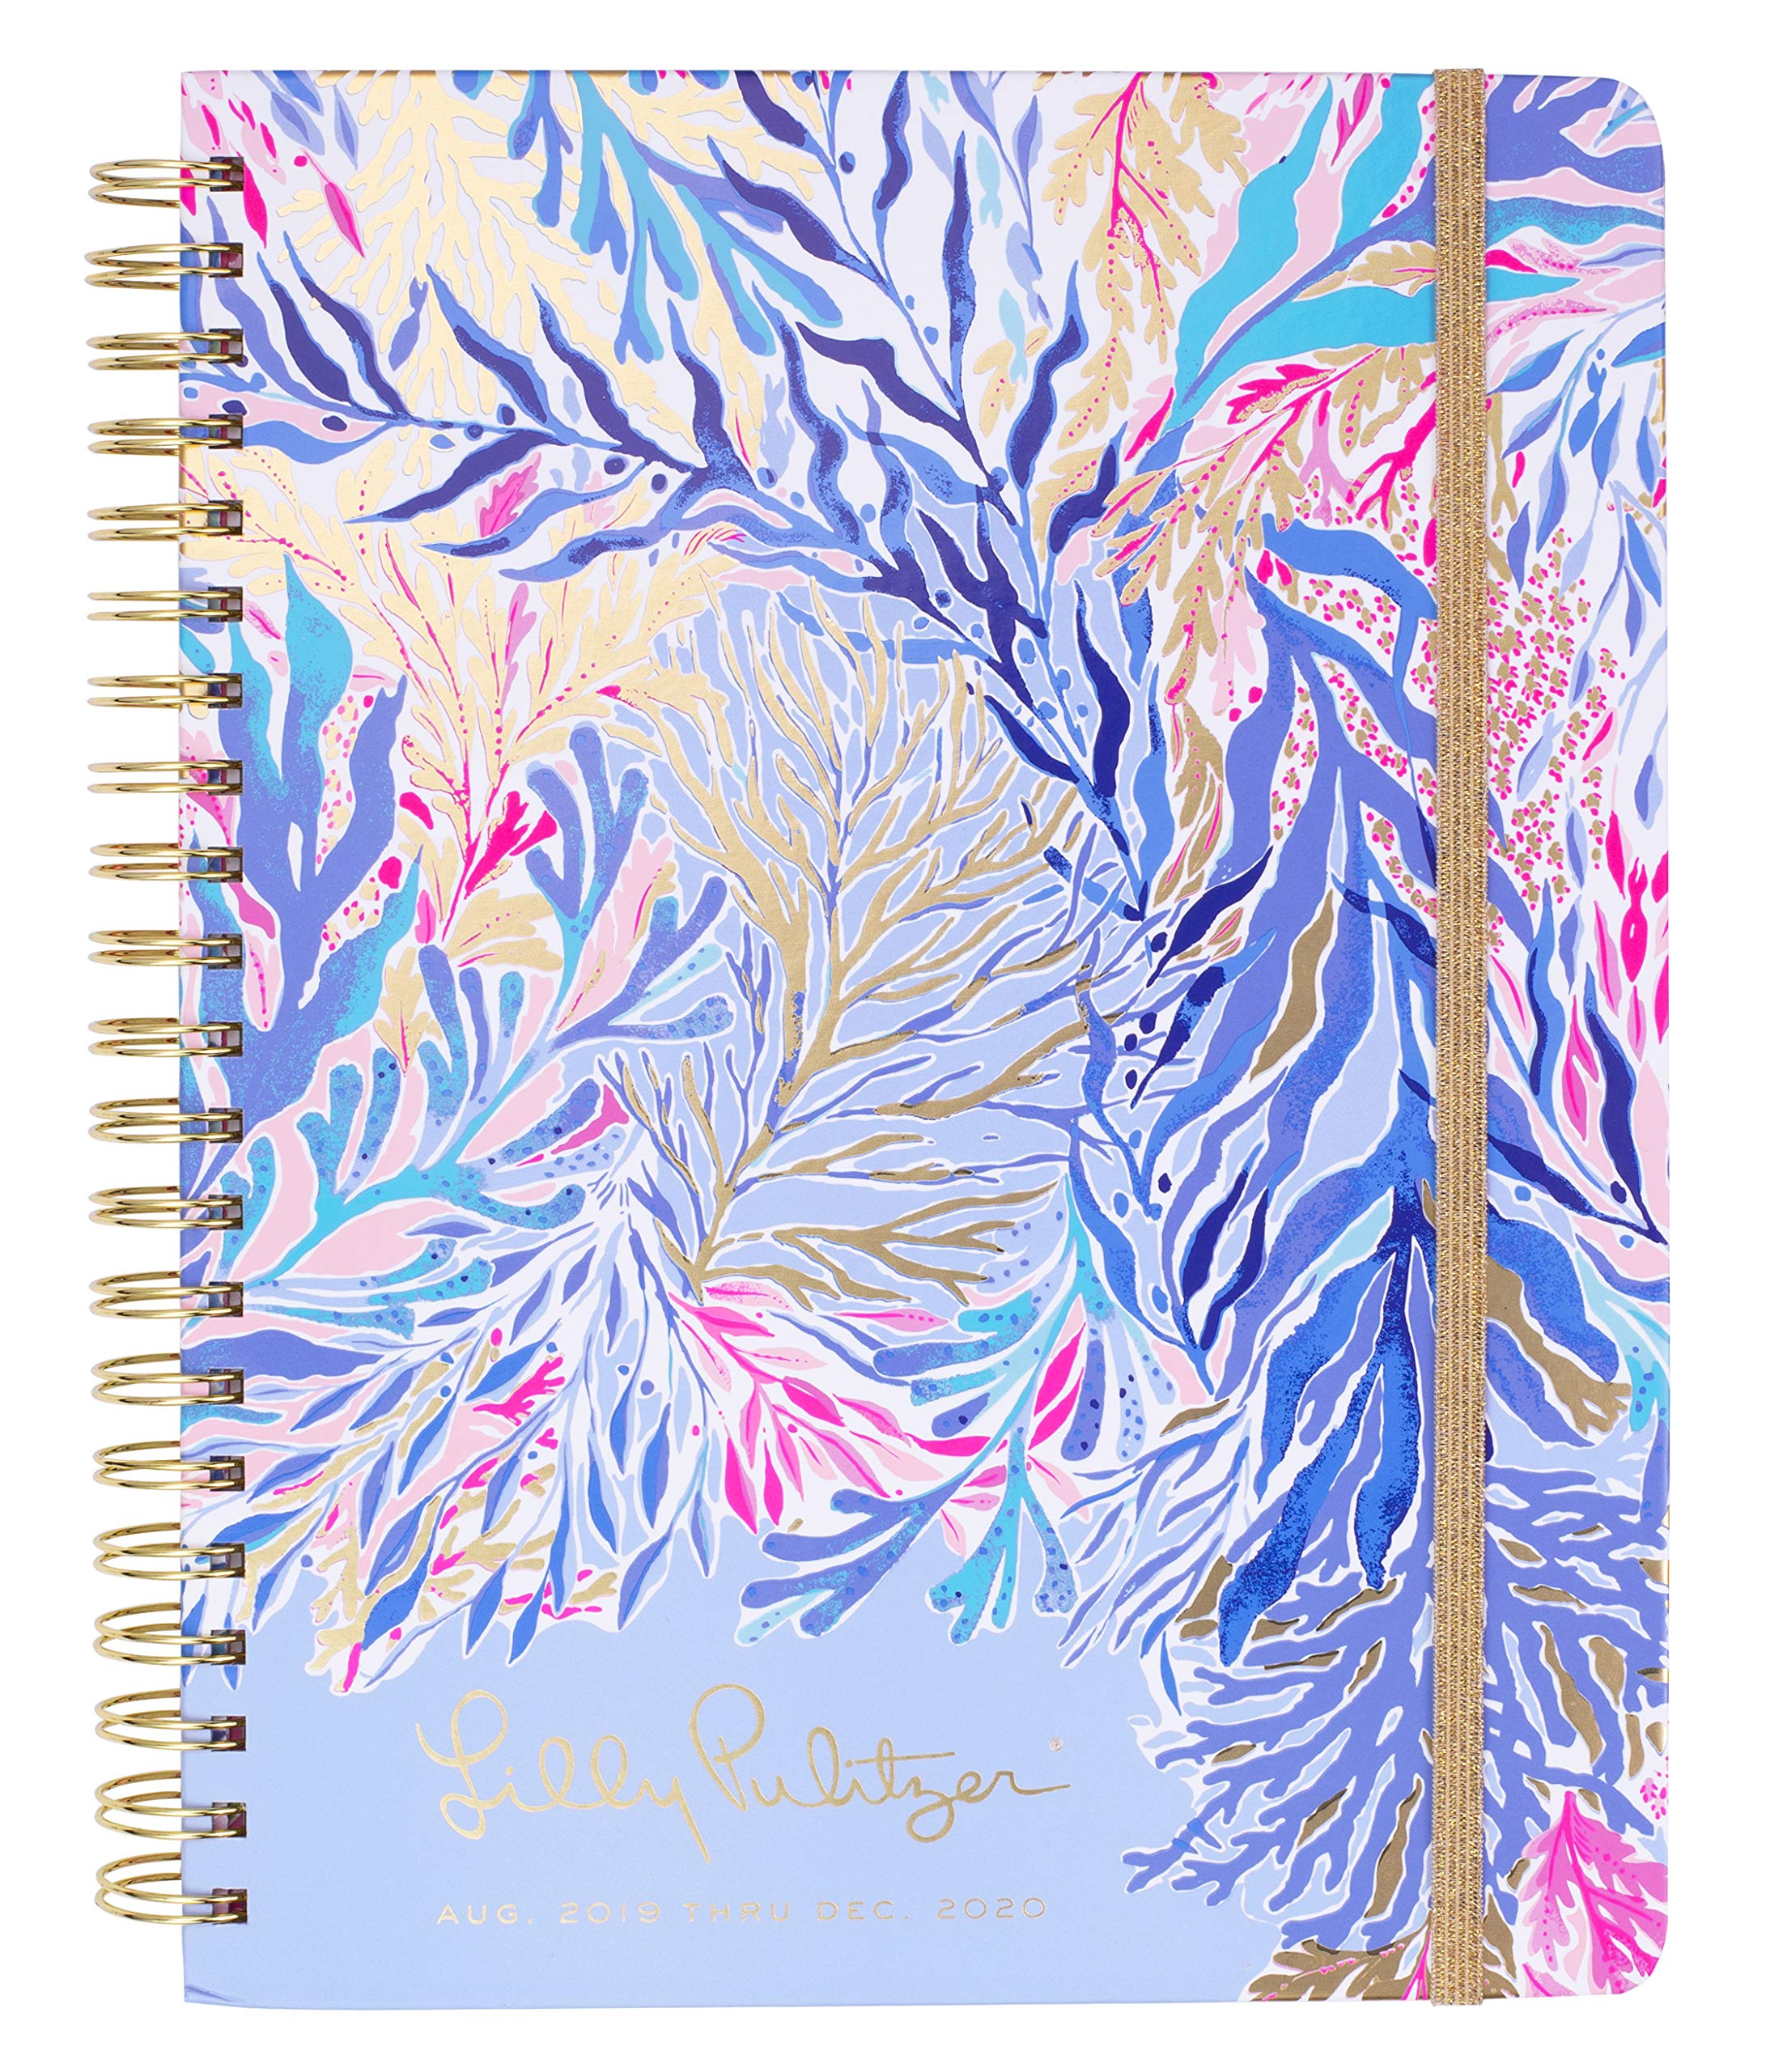 Lilly Pulitzer Jumbo 17 Month Hardcover Agenda, 11.13'' x 8.63'' Personal Planner with Monthly & Weekly Spreads for Aug. 2019 - Dec. 2020, Kaleidoscope Coral by Lilly Pulitzer